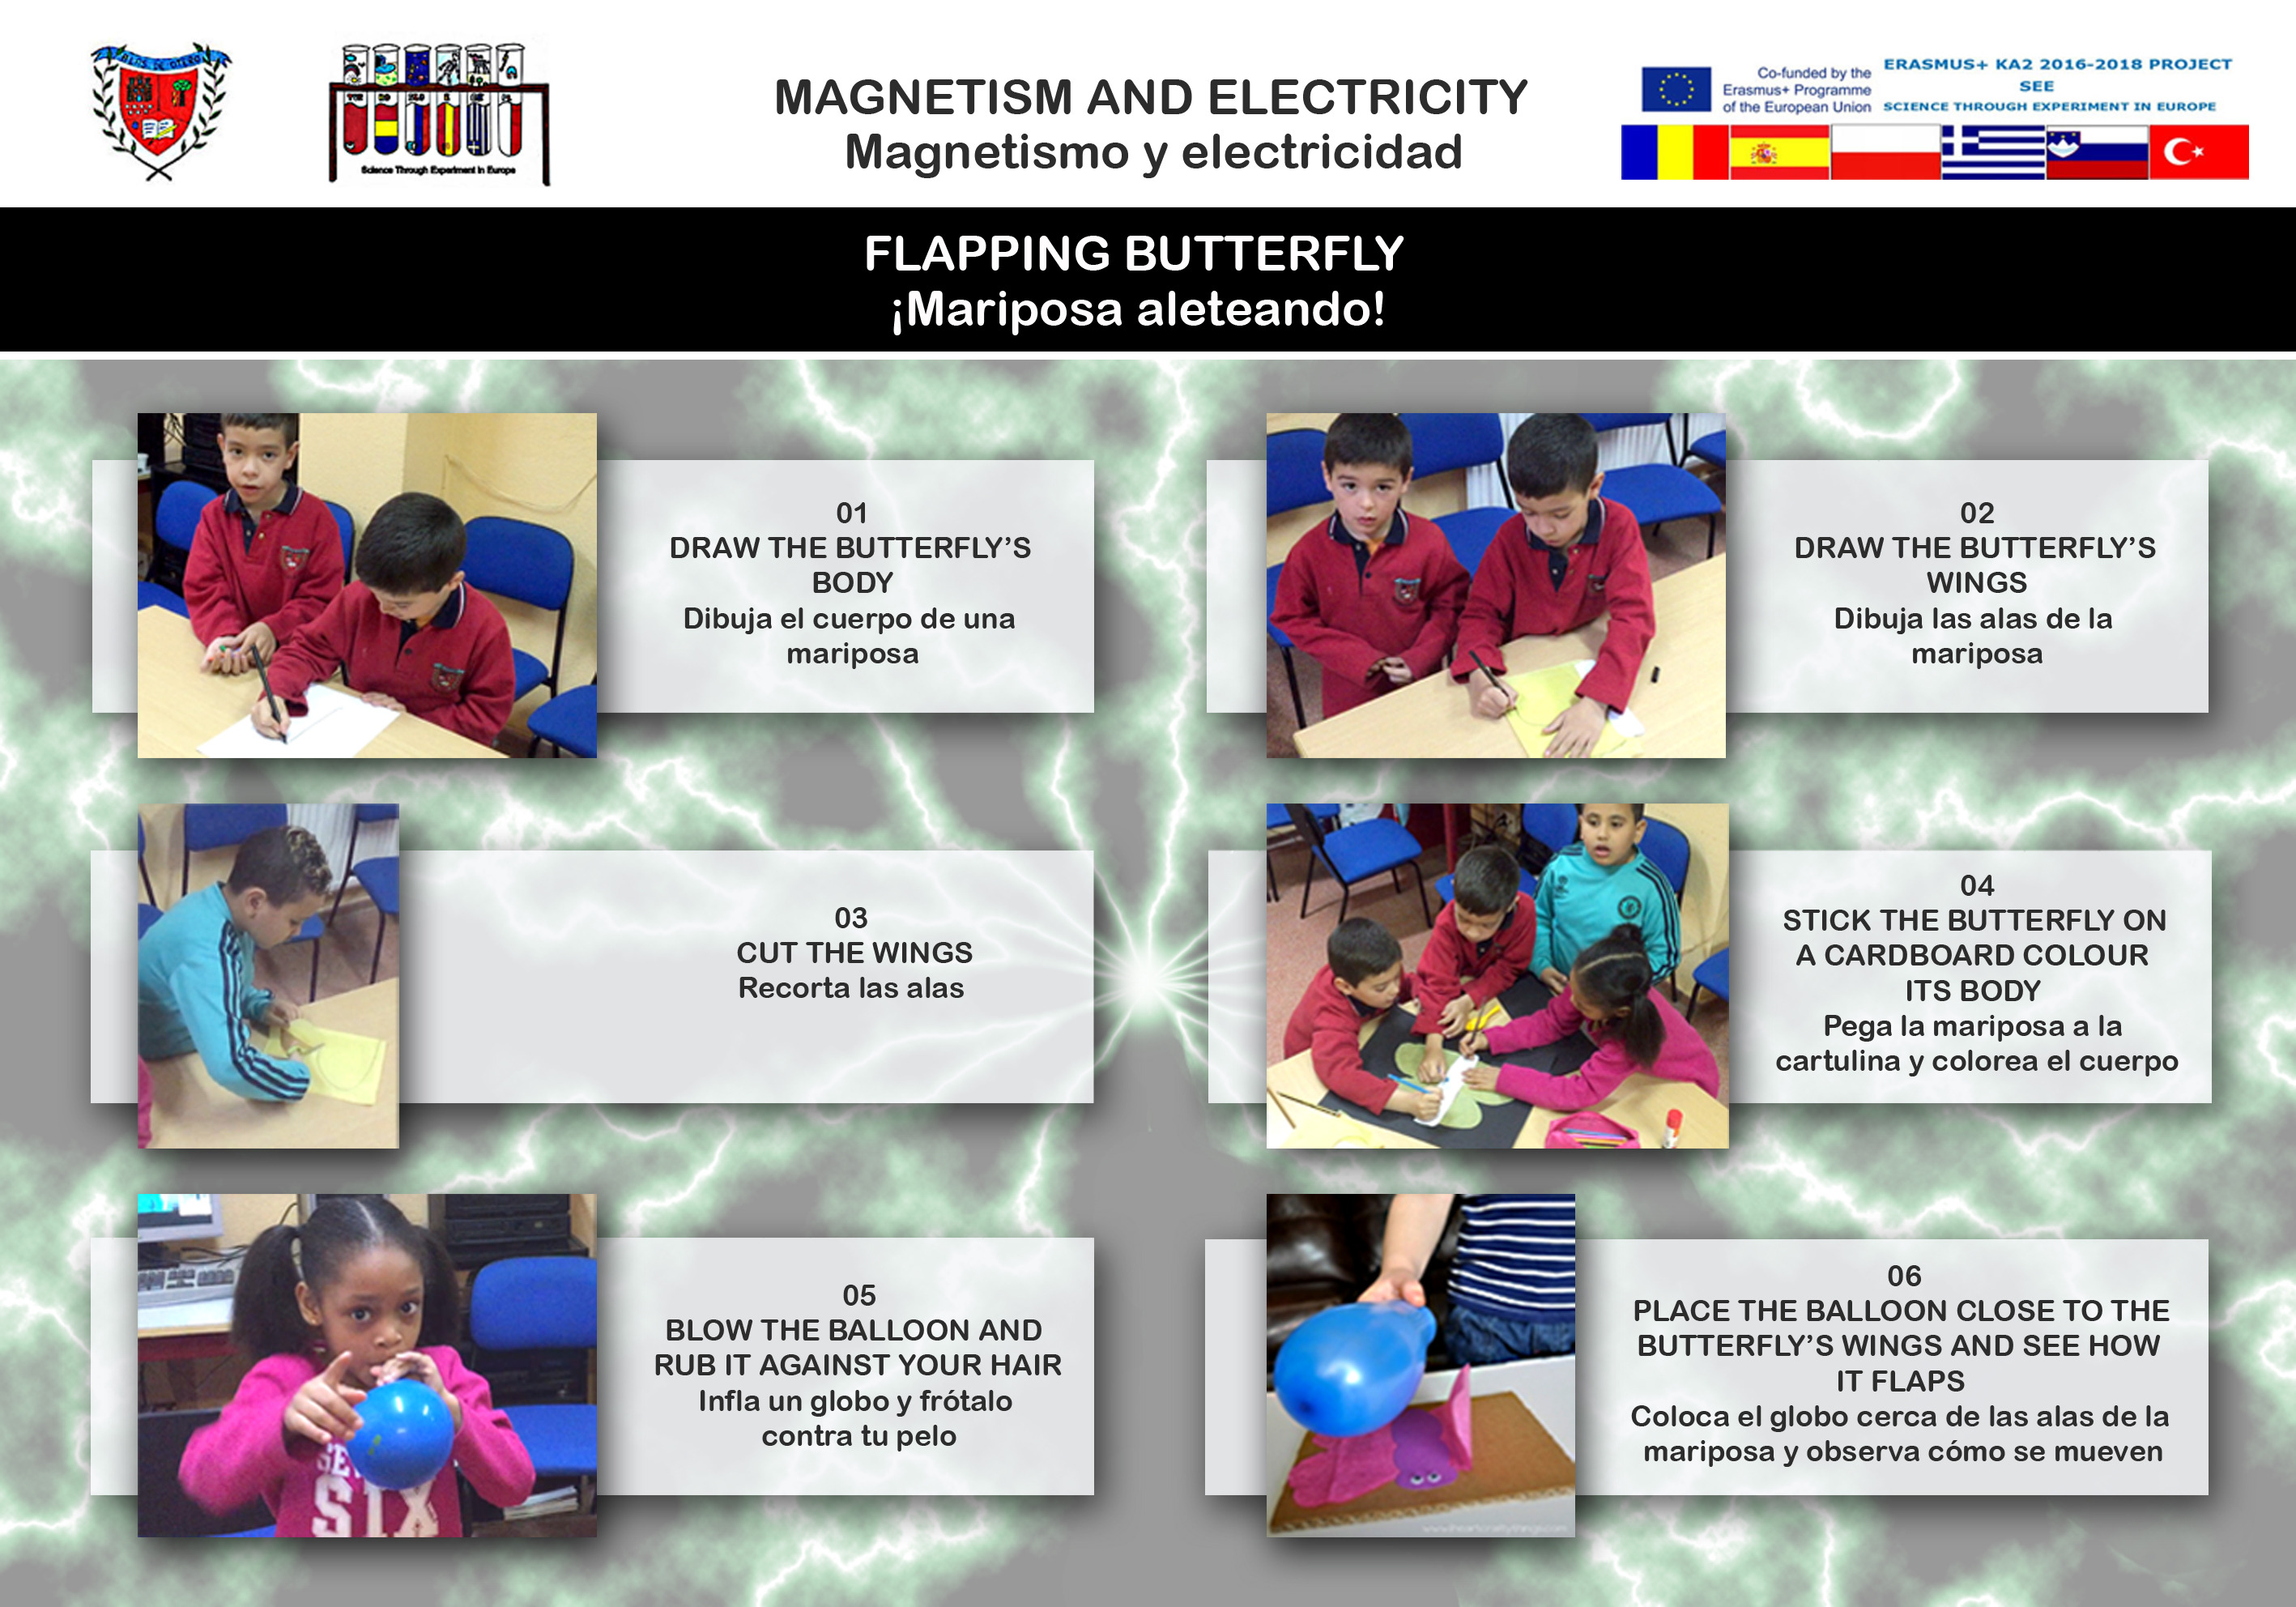 Magnetism and electricity experiment 03 Flapping butterfly